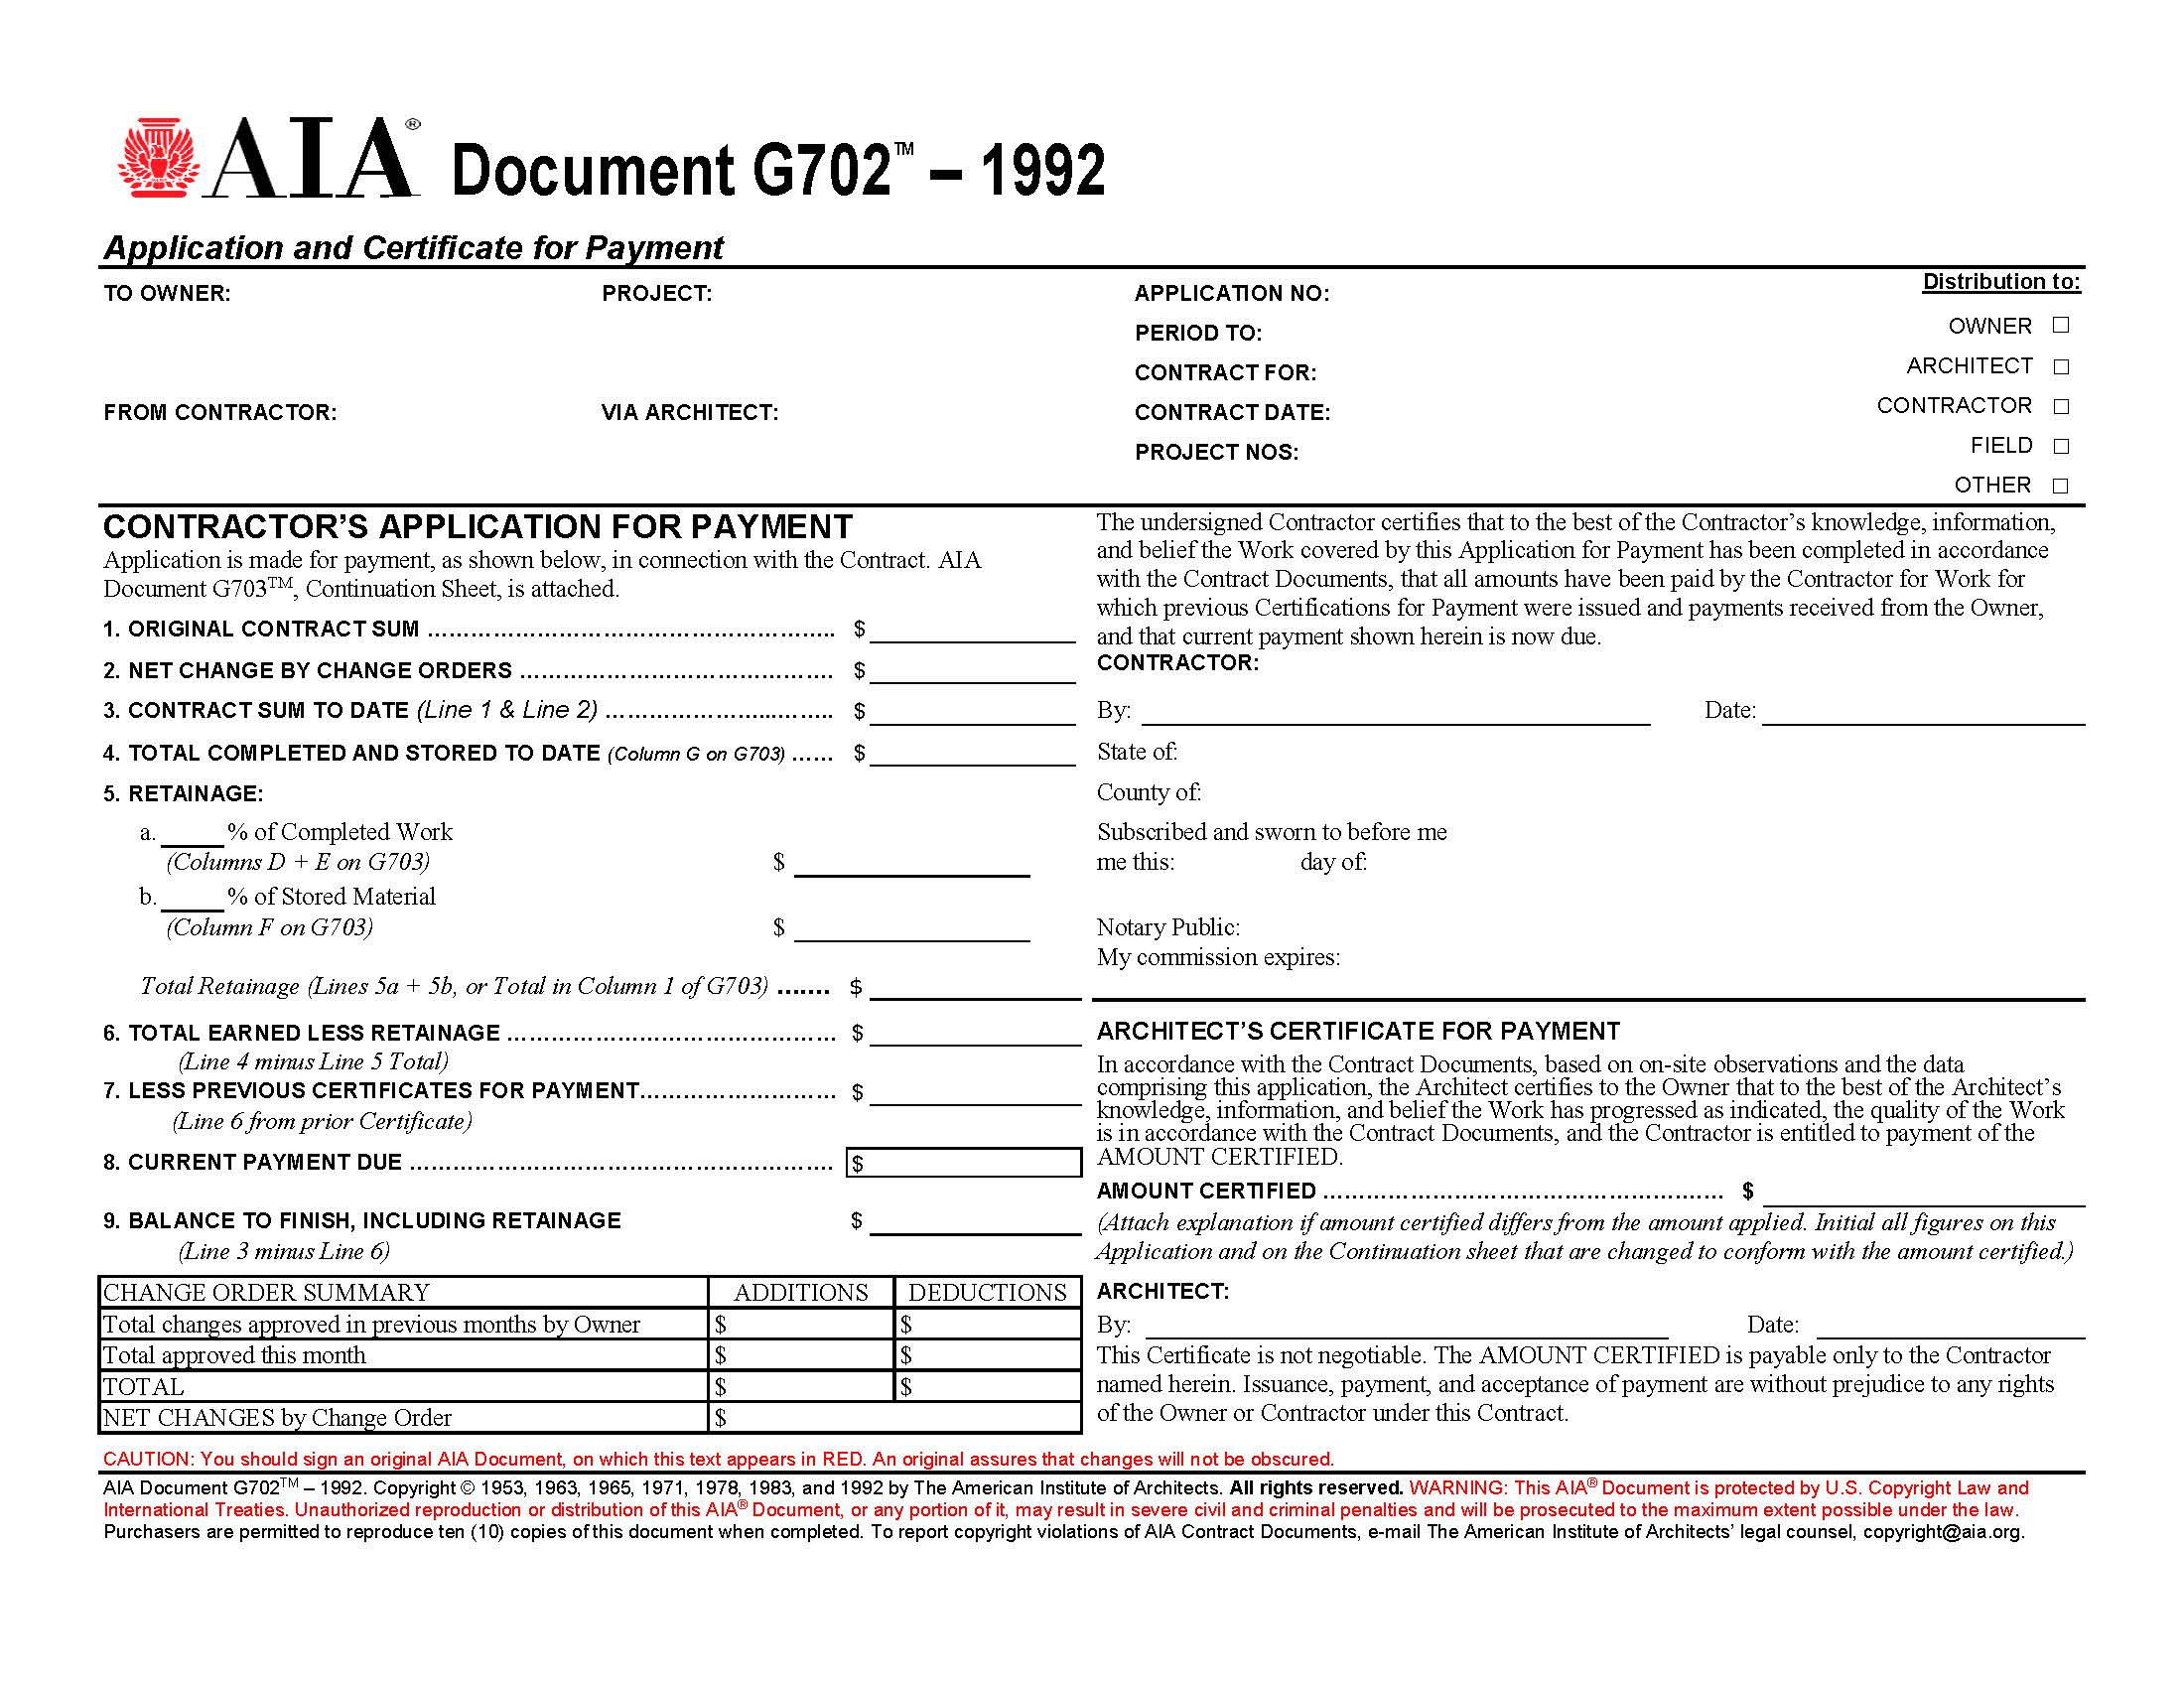 Image of AIA G702 form